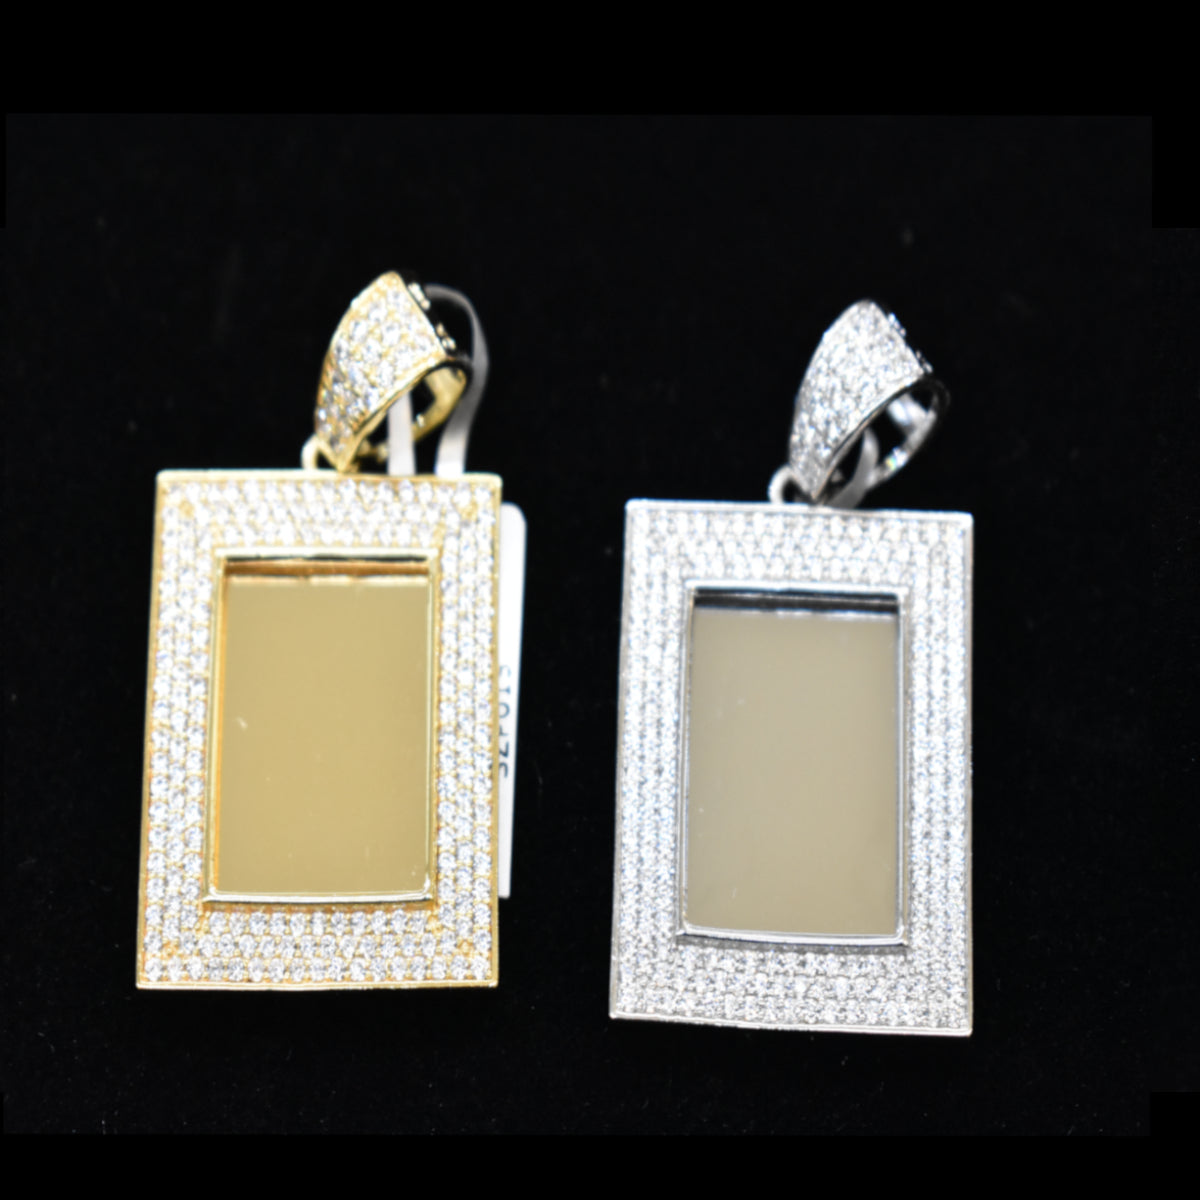 Iced Out Square Picture/Memory Pendant Free Chain 24""